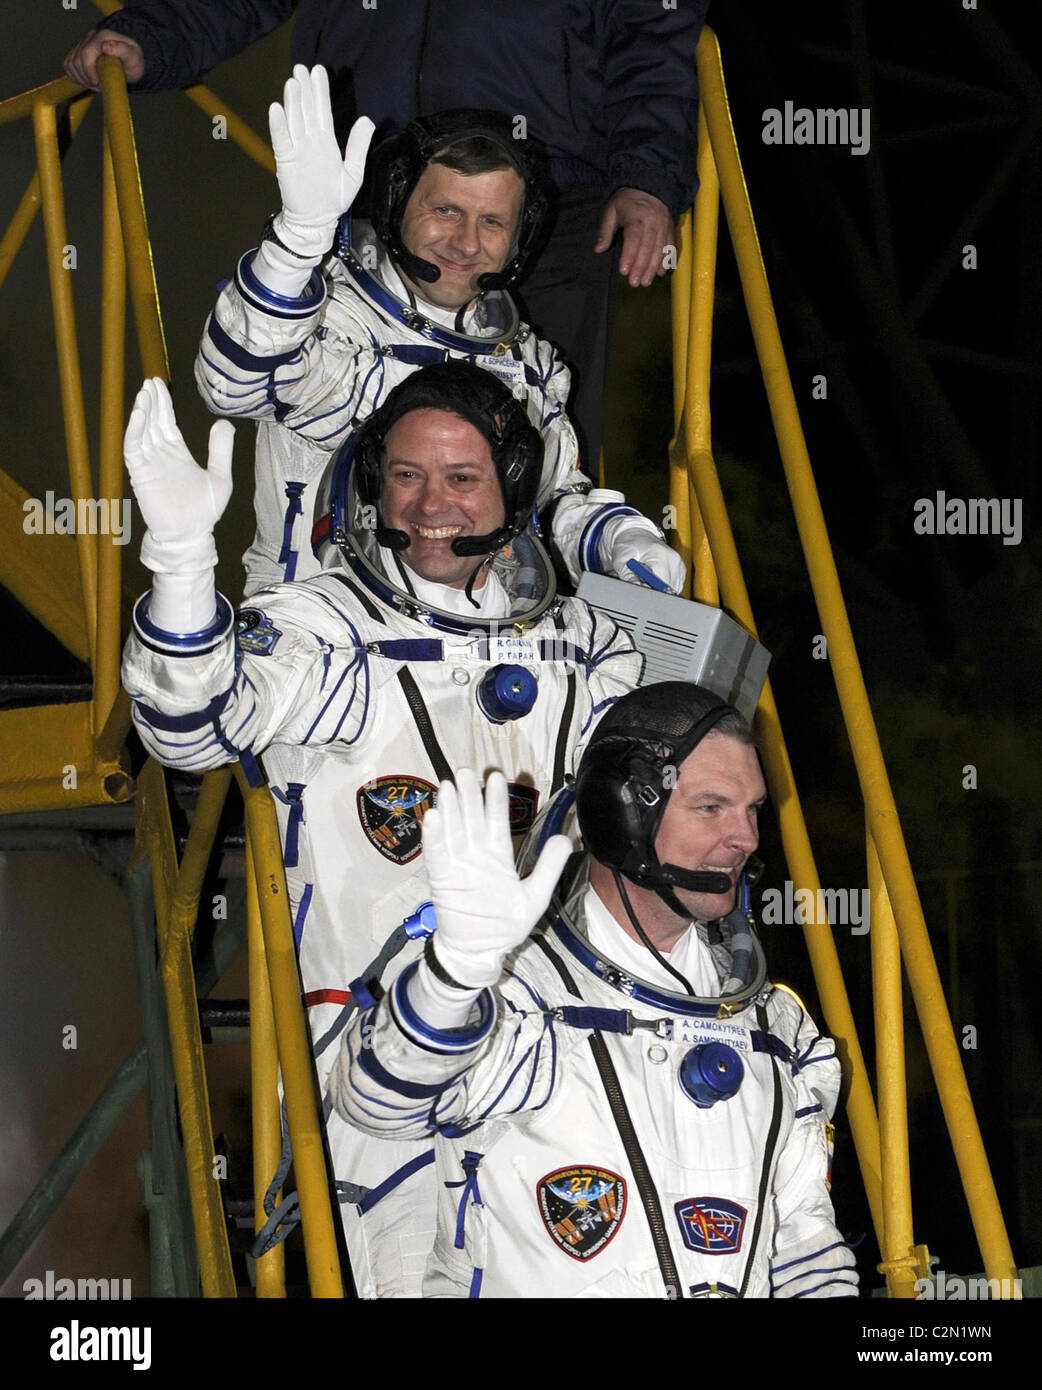 Expedition 27 crew members - Stock Image